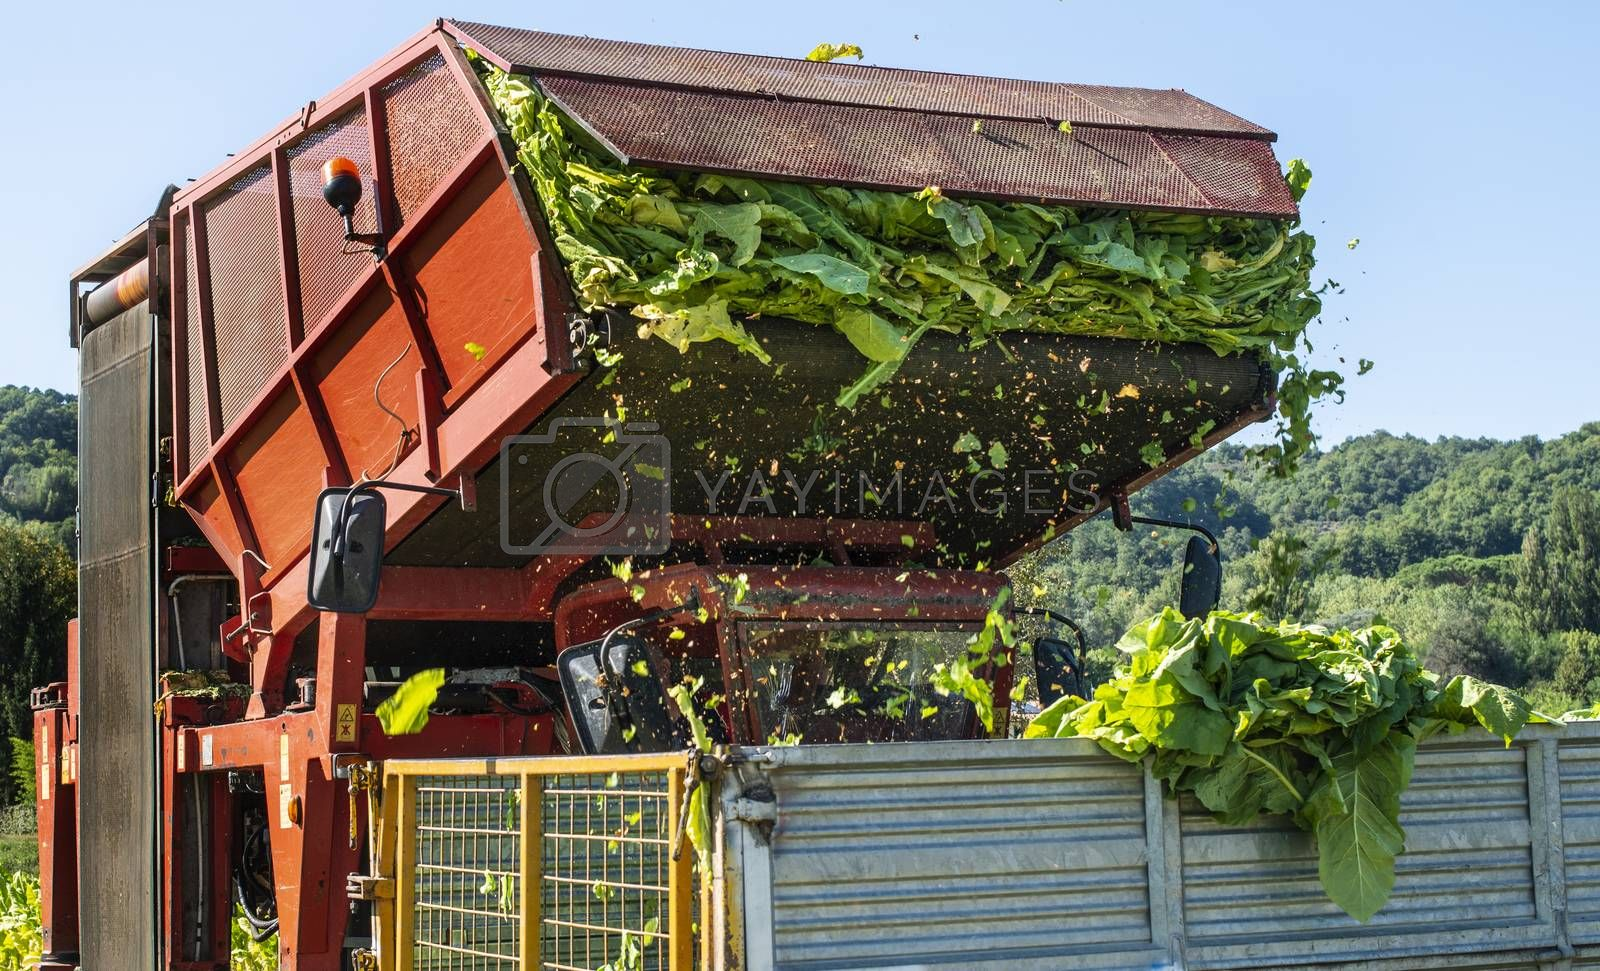 Loading tobacco leaves on truck. Harvest and transport tobacco leaves from plantation. Sunlight.